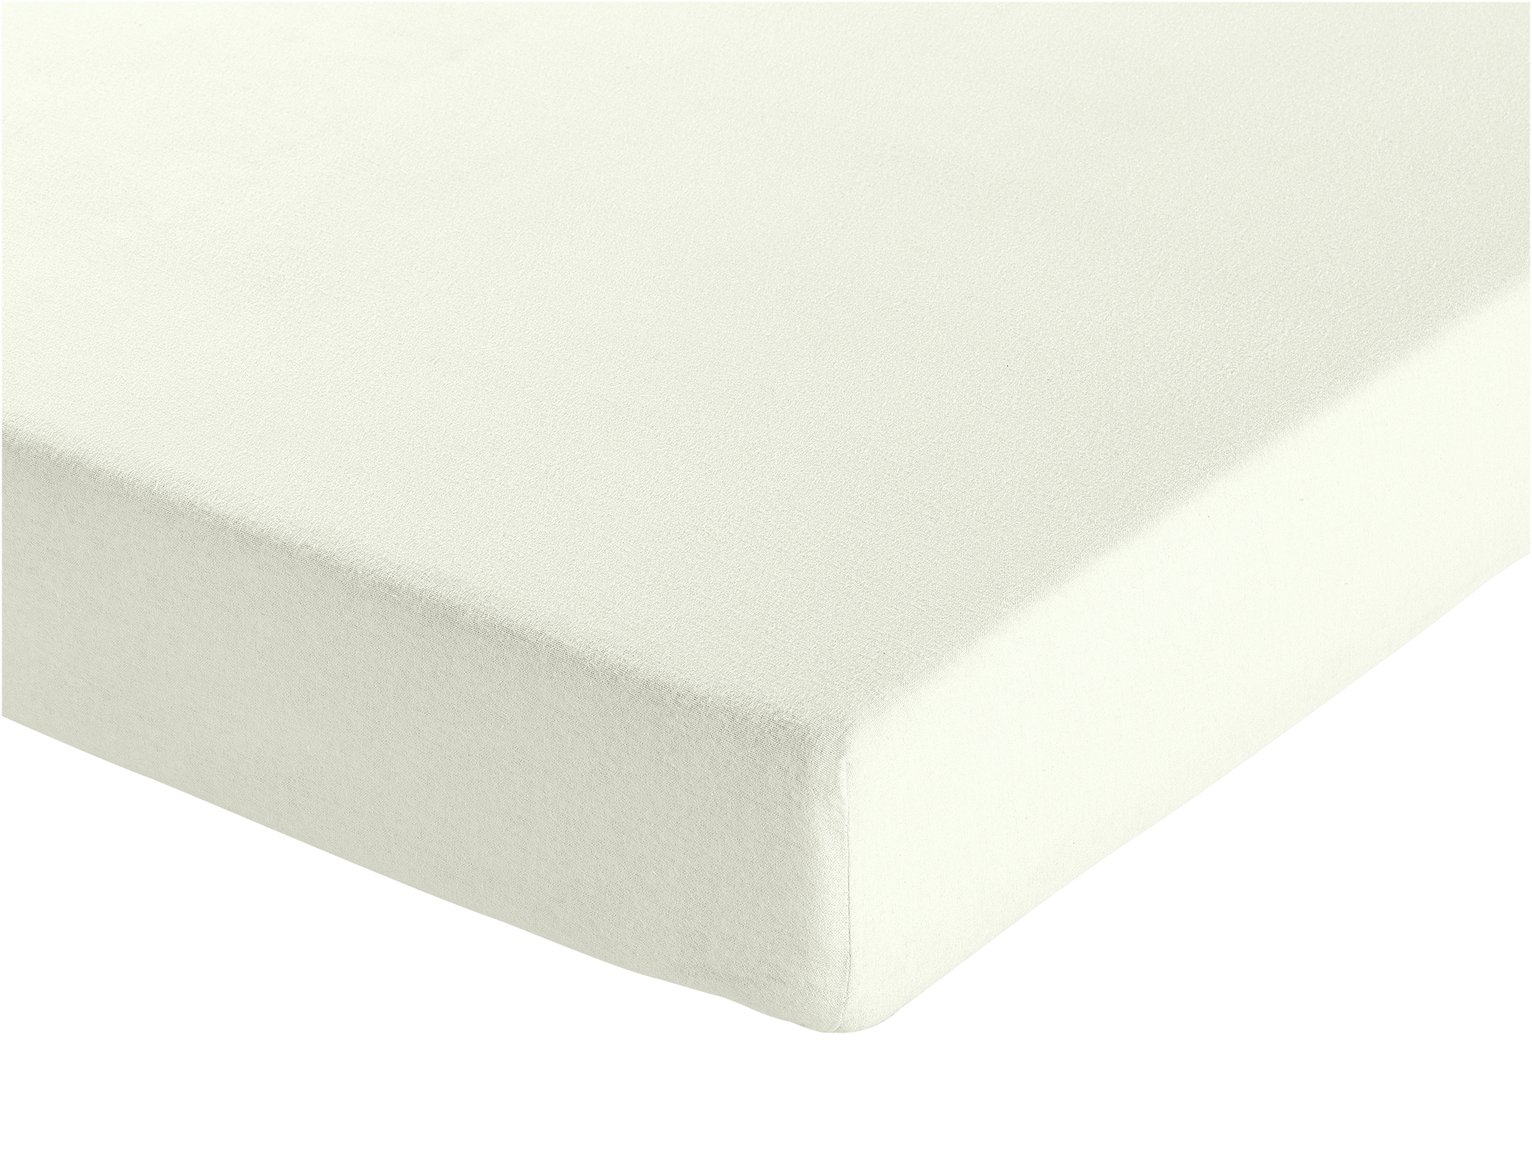 Argos Home Cream Brushed Cotton Fitted Sheet - Double